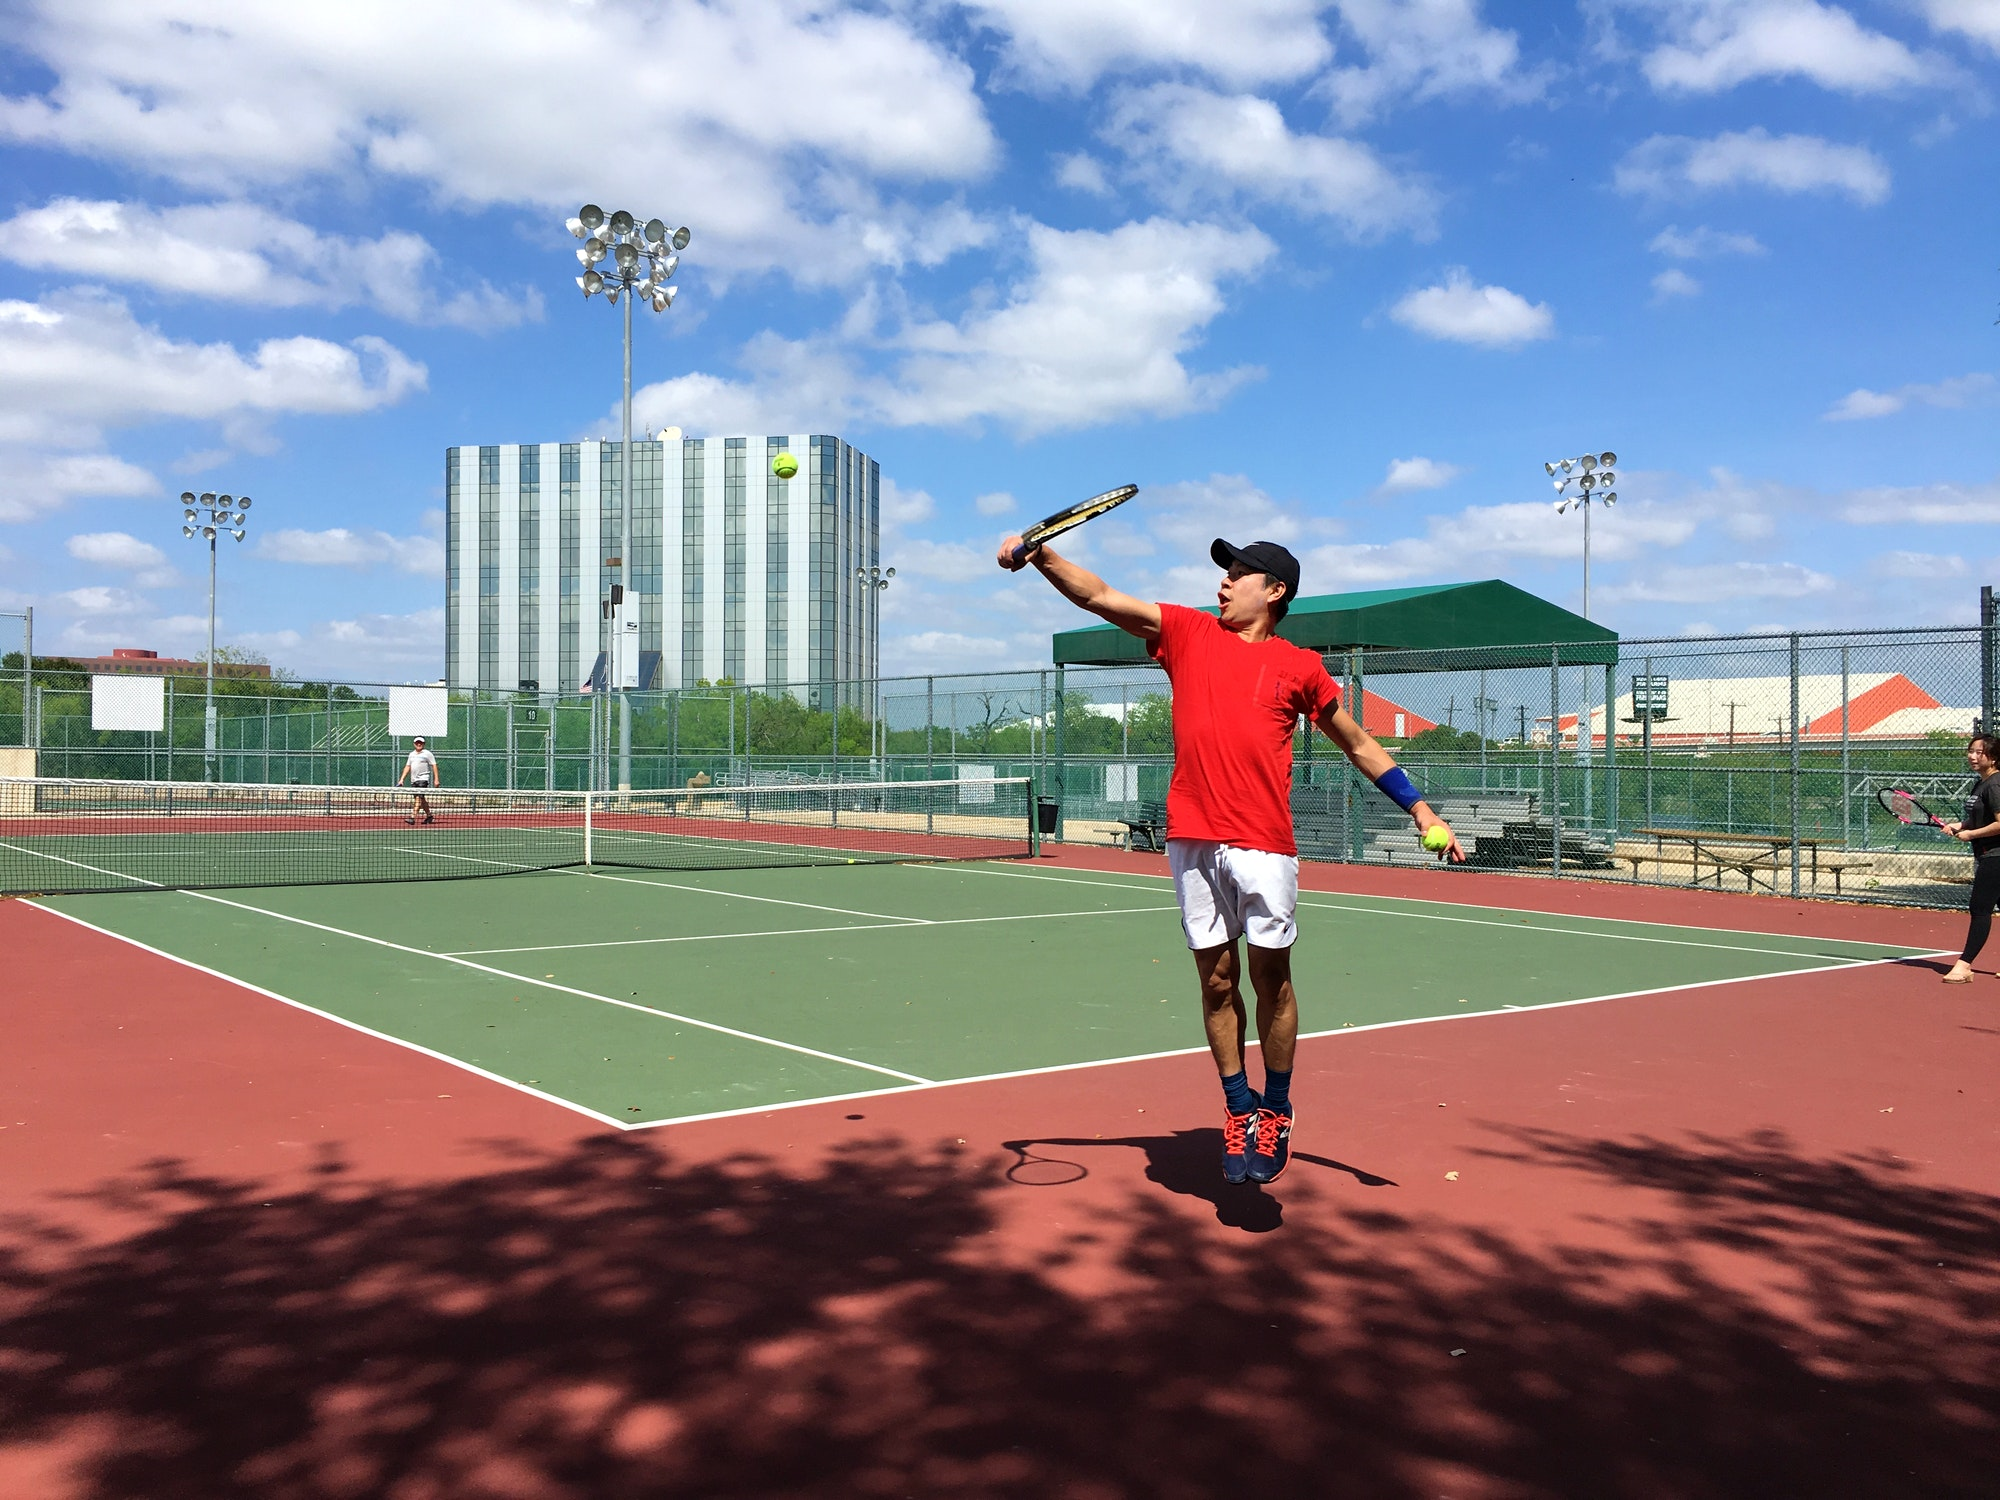 Kevin W. teaches tennis lessons in New Braunfels, TX